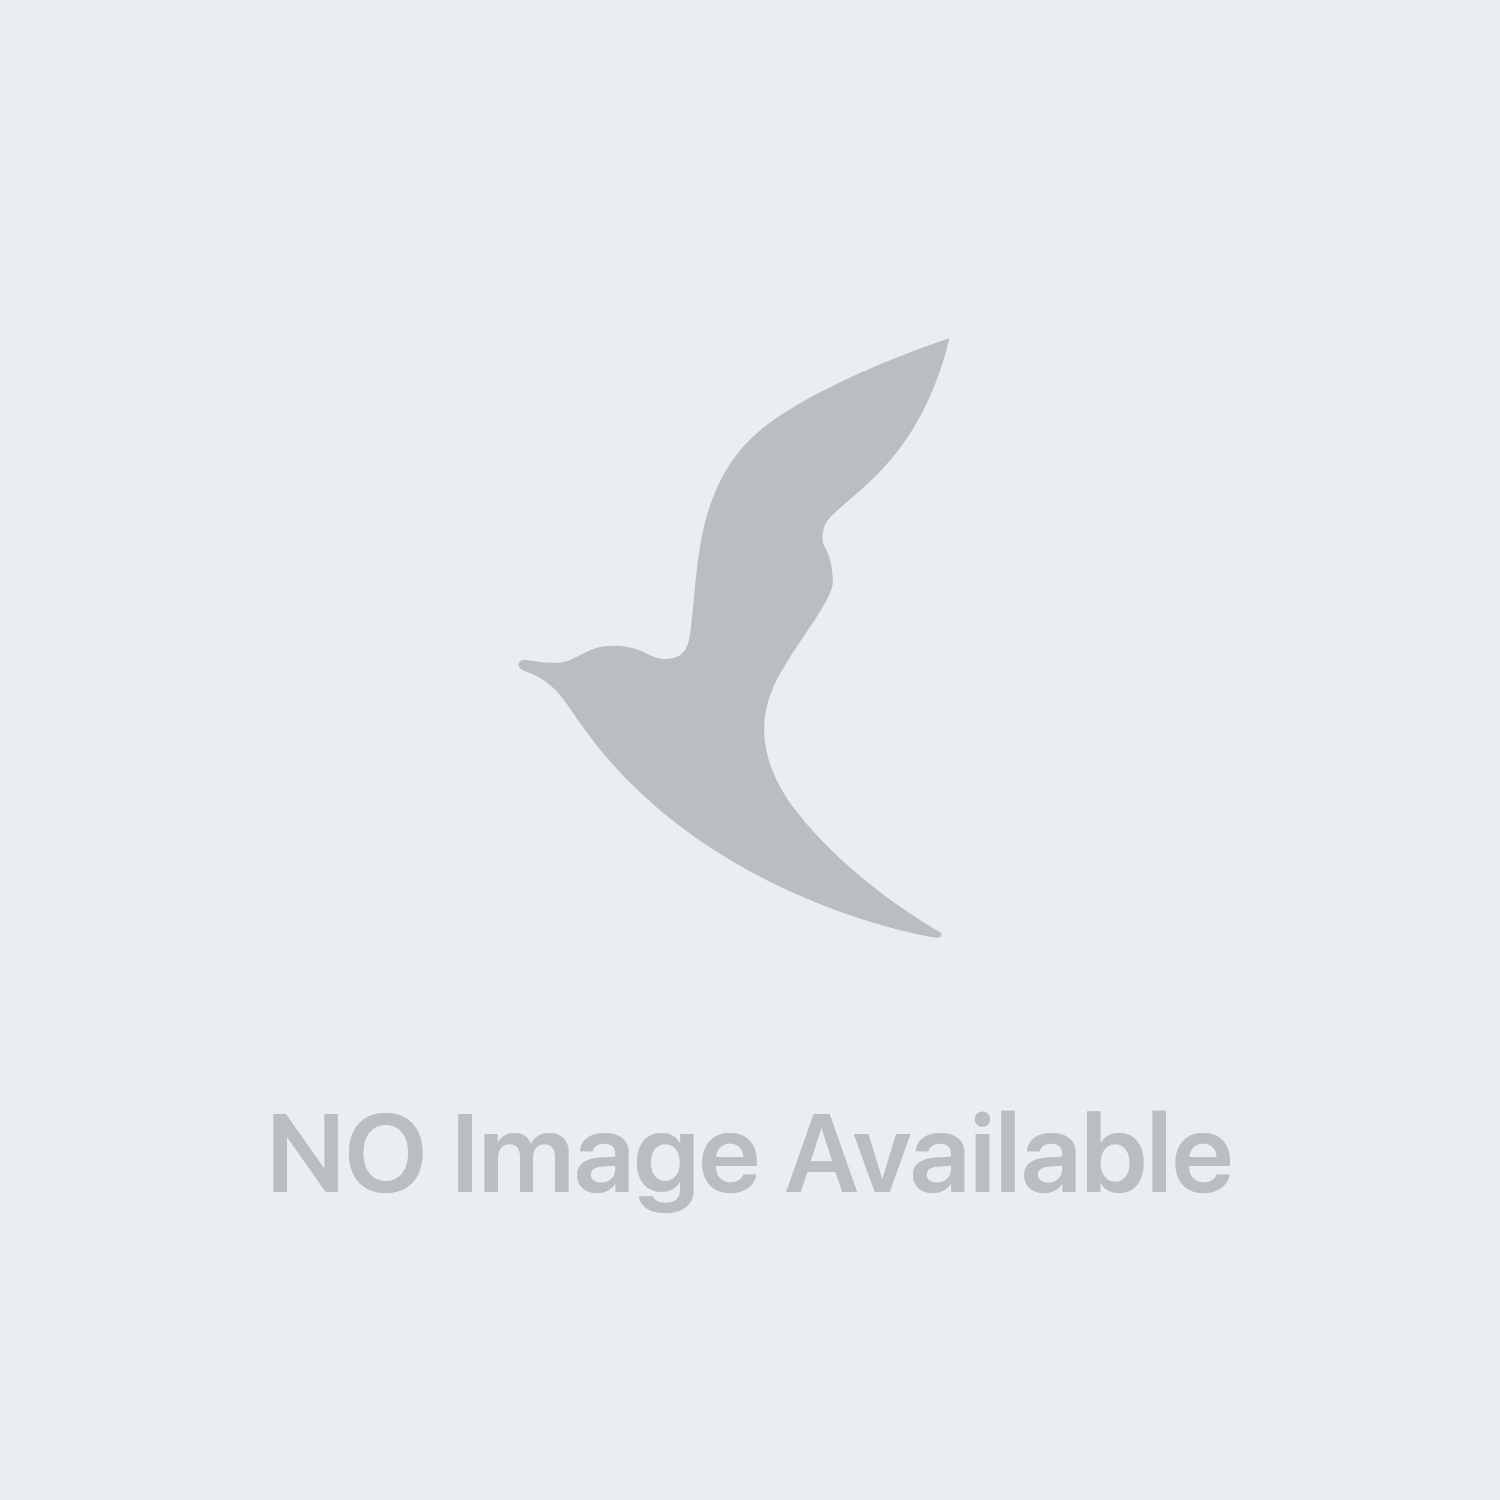 Rinogutt Spray Nasale 11,8 mg 10 ml